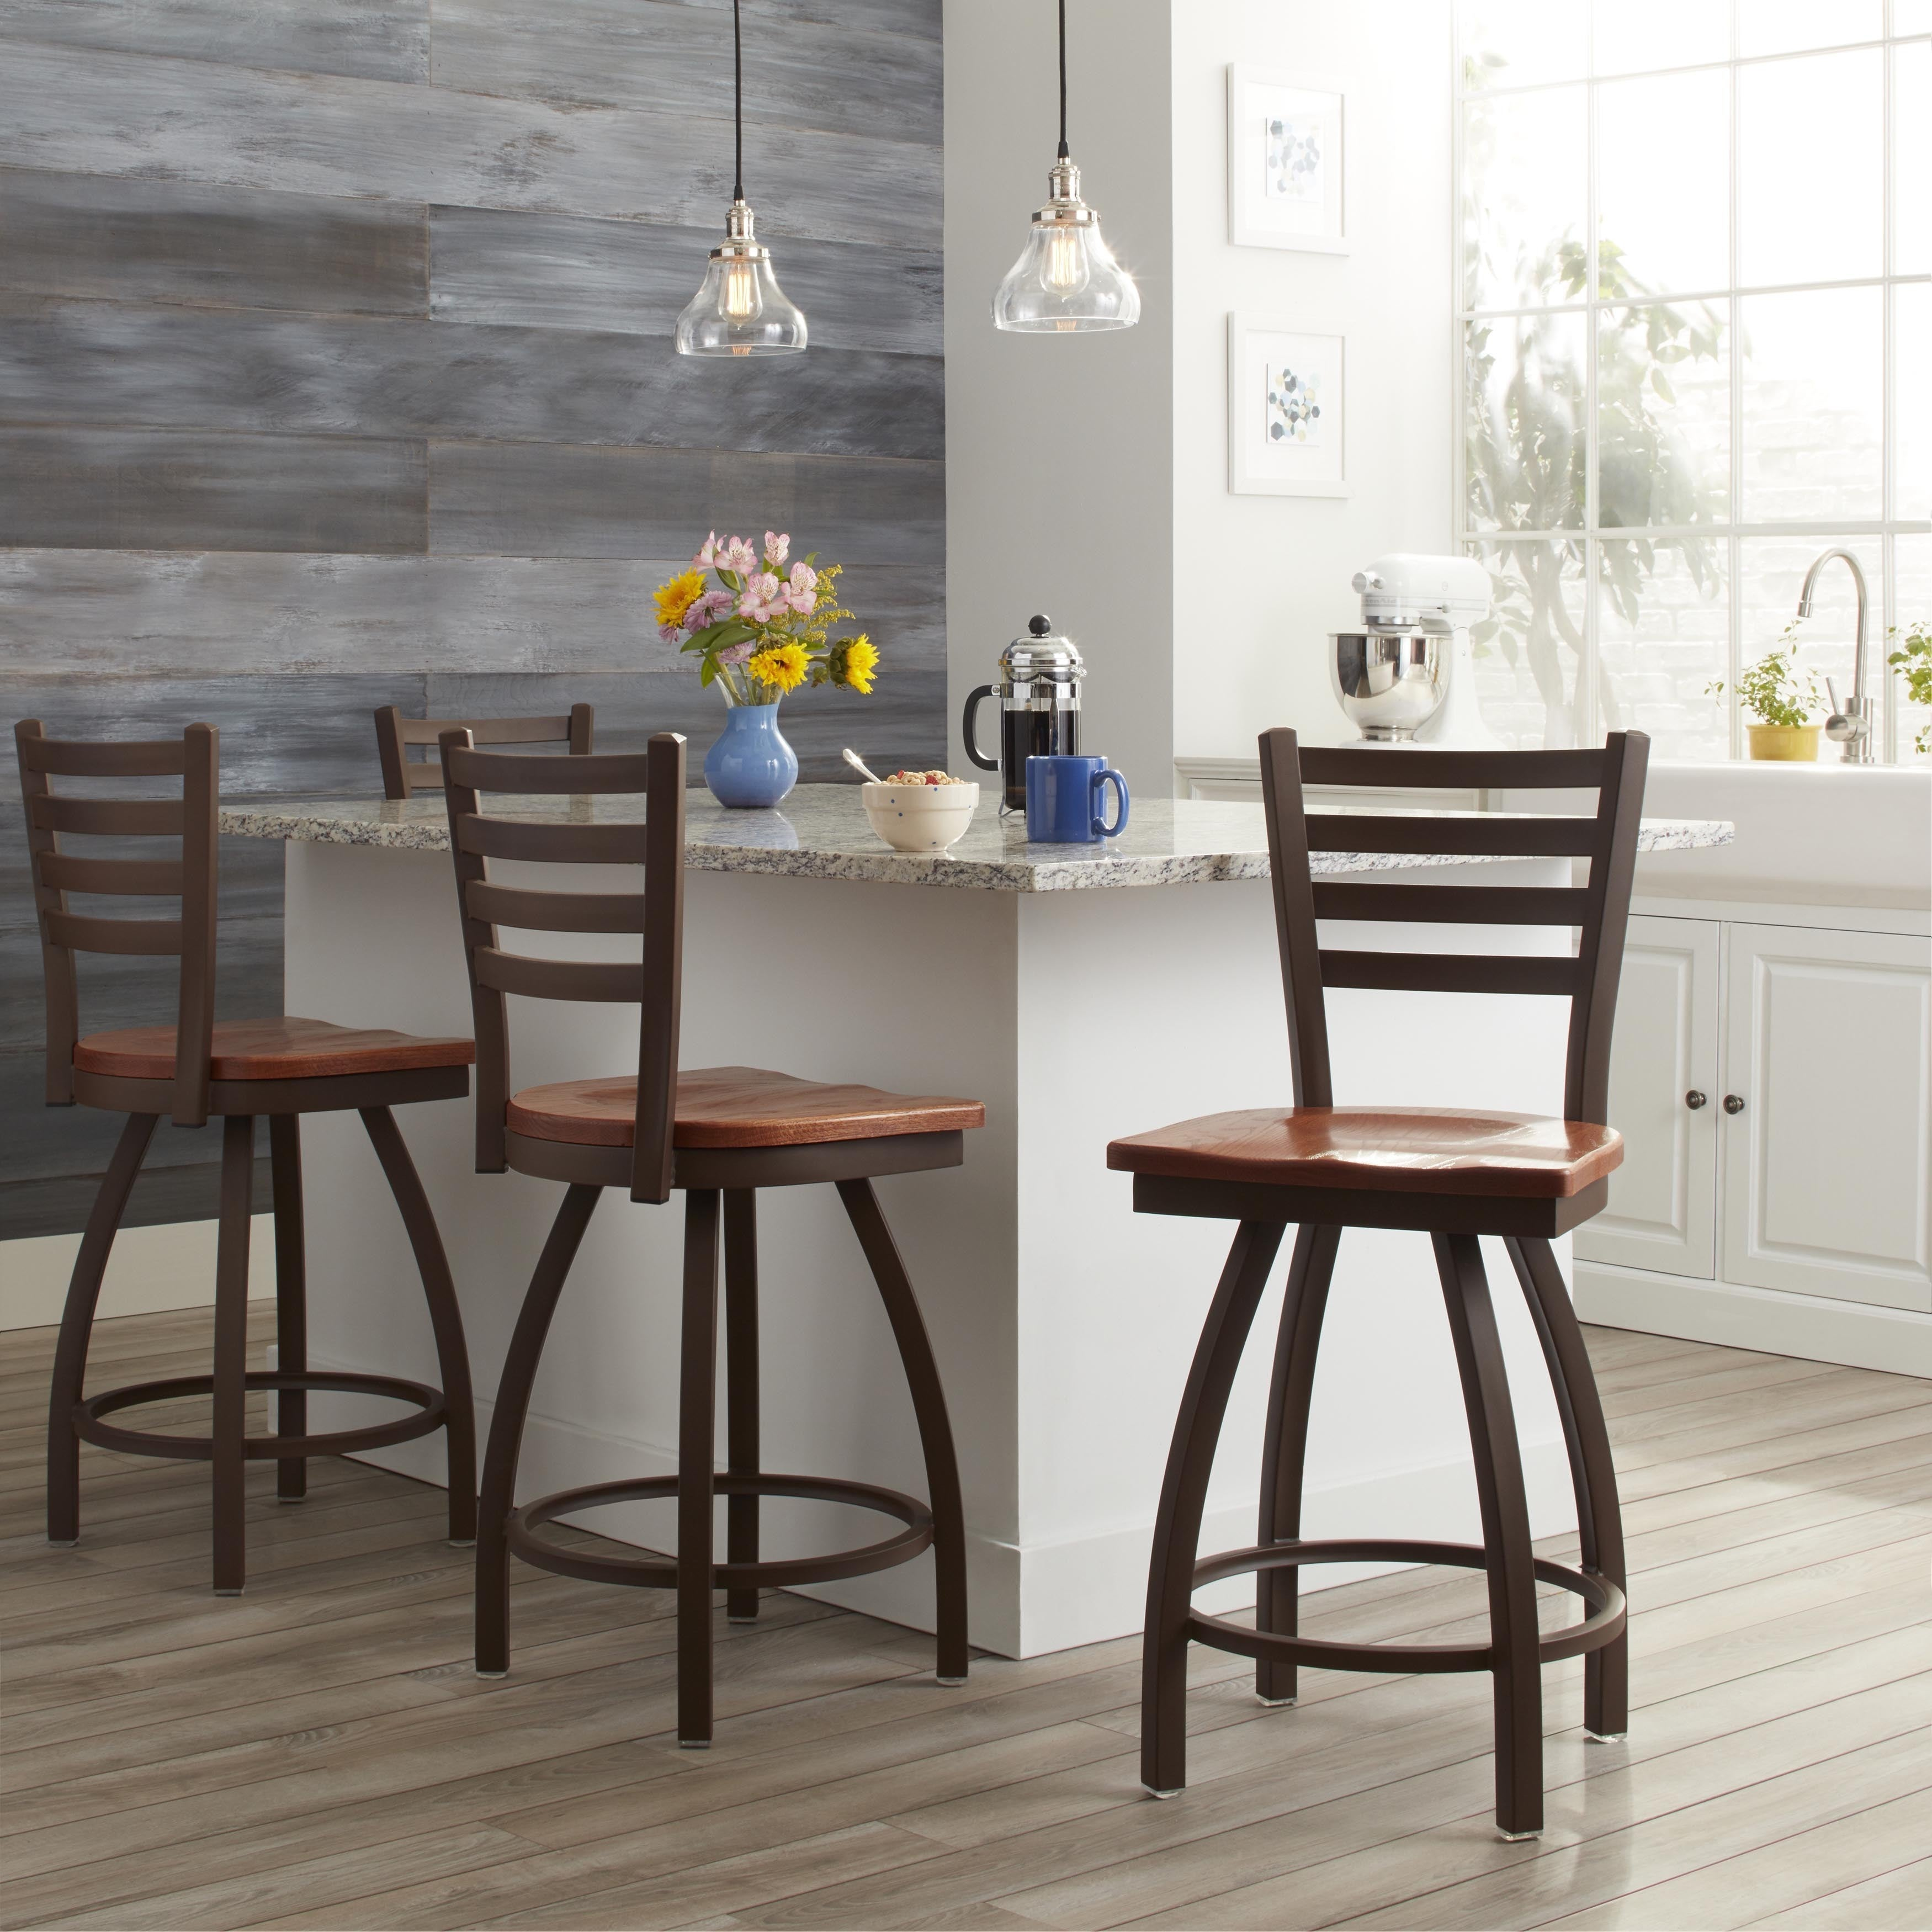 discount kitchen stools paint buy counter bar stools online at overstockcom our best dining room furniture deals